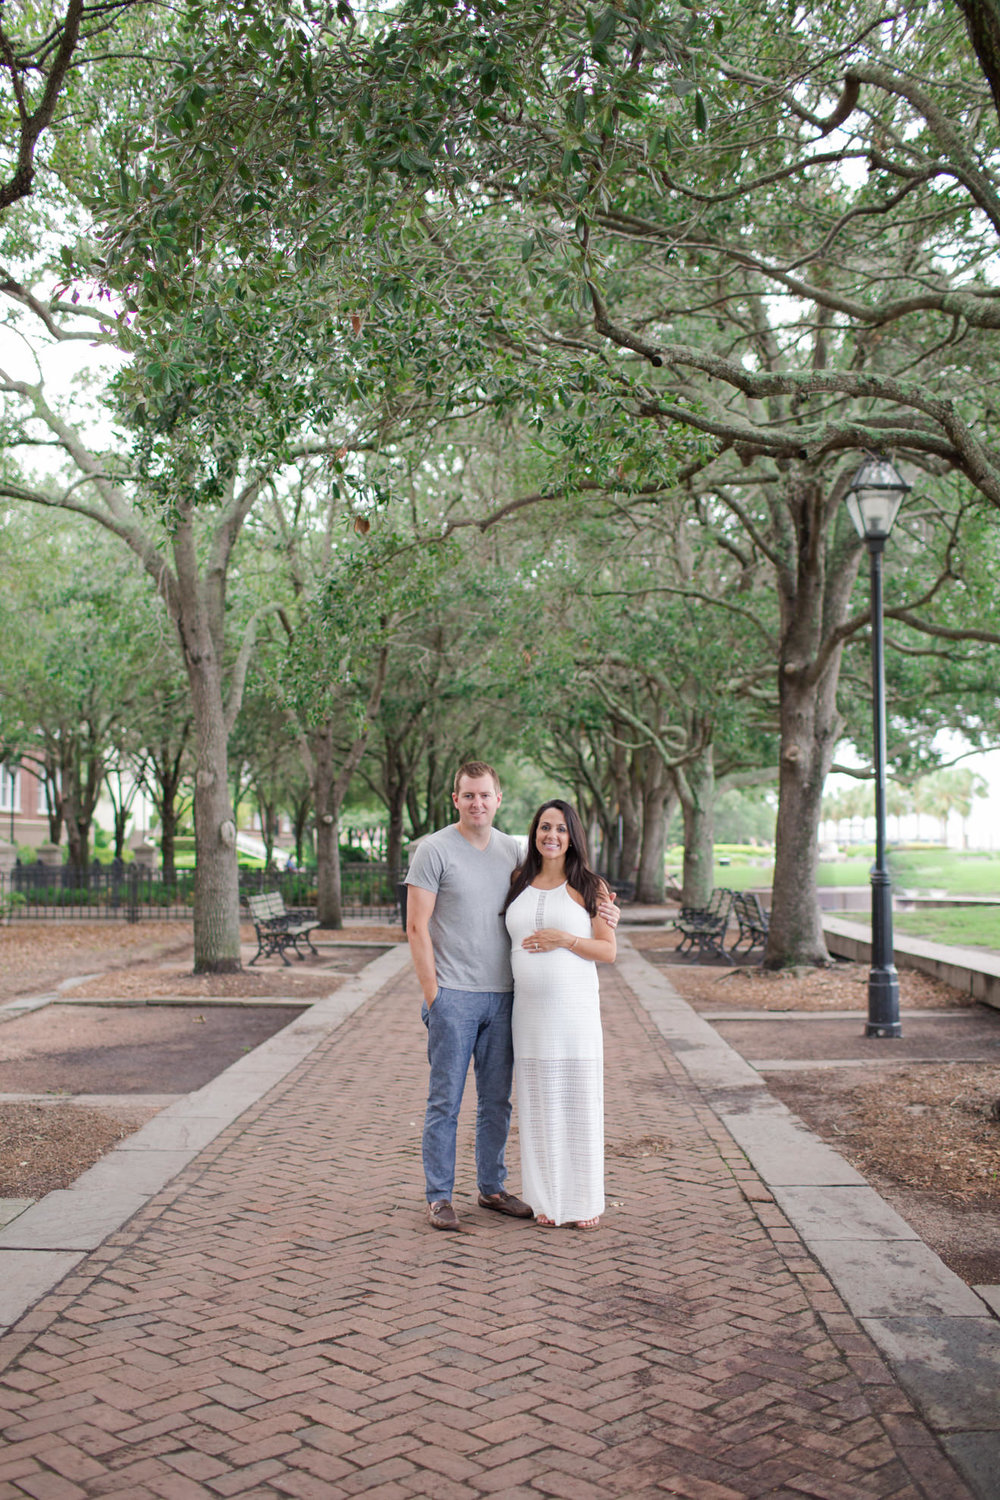 This is one of my favorite images from Chris and Lauren's session. The trees downtown, near the pineapple fountain in Waterfront Park, are just perfection!